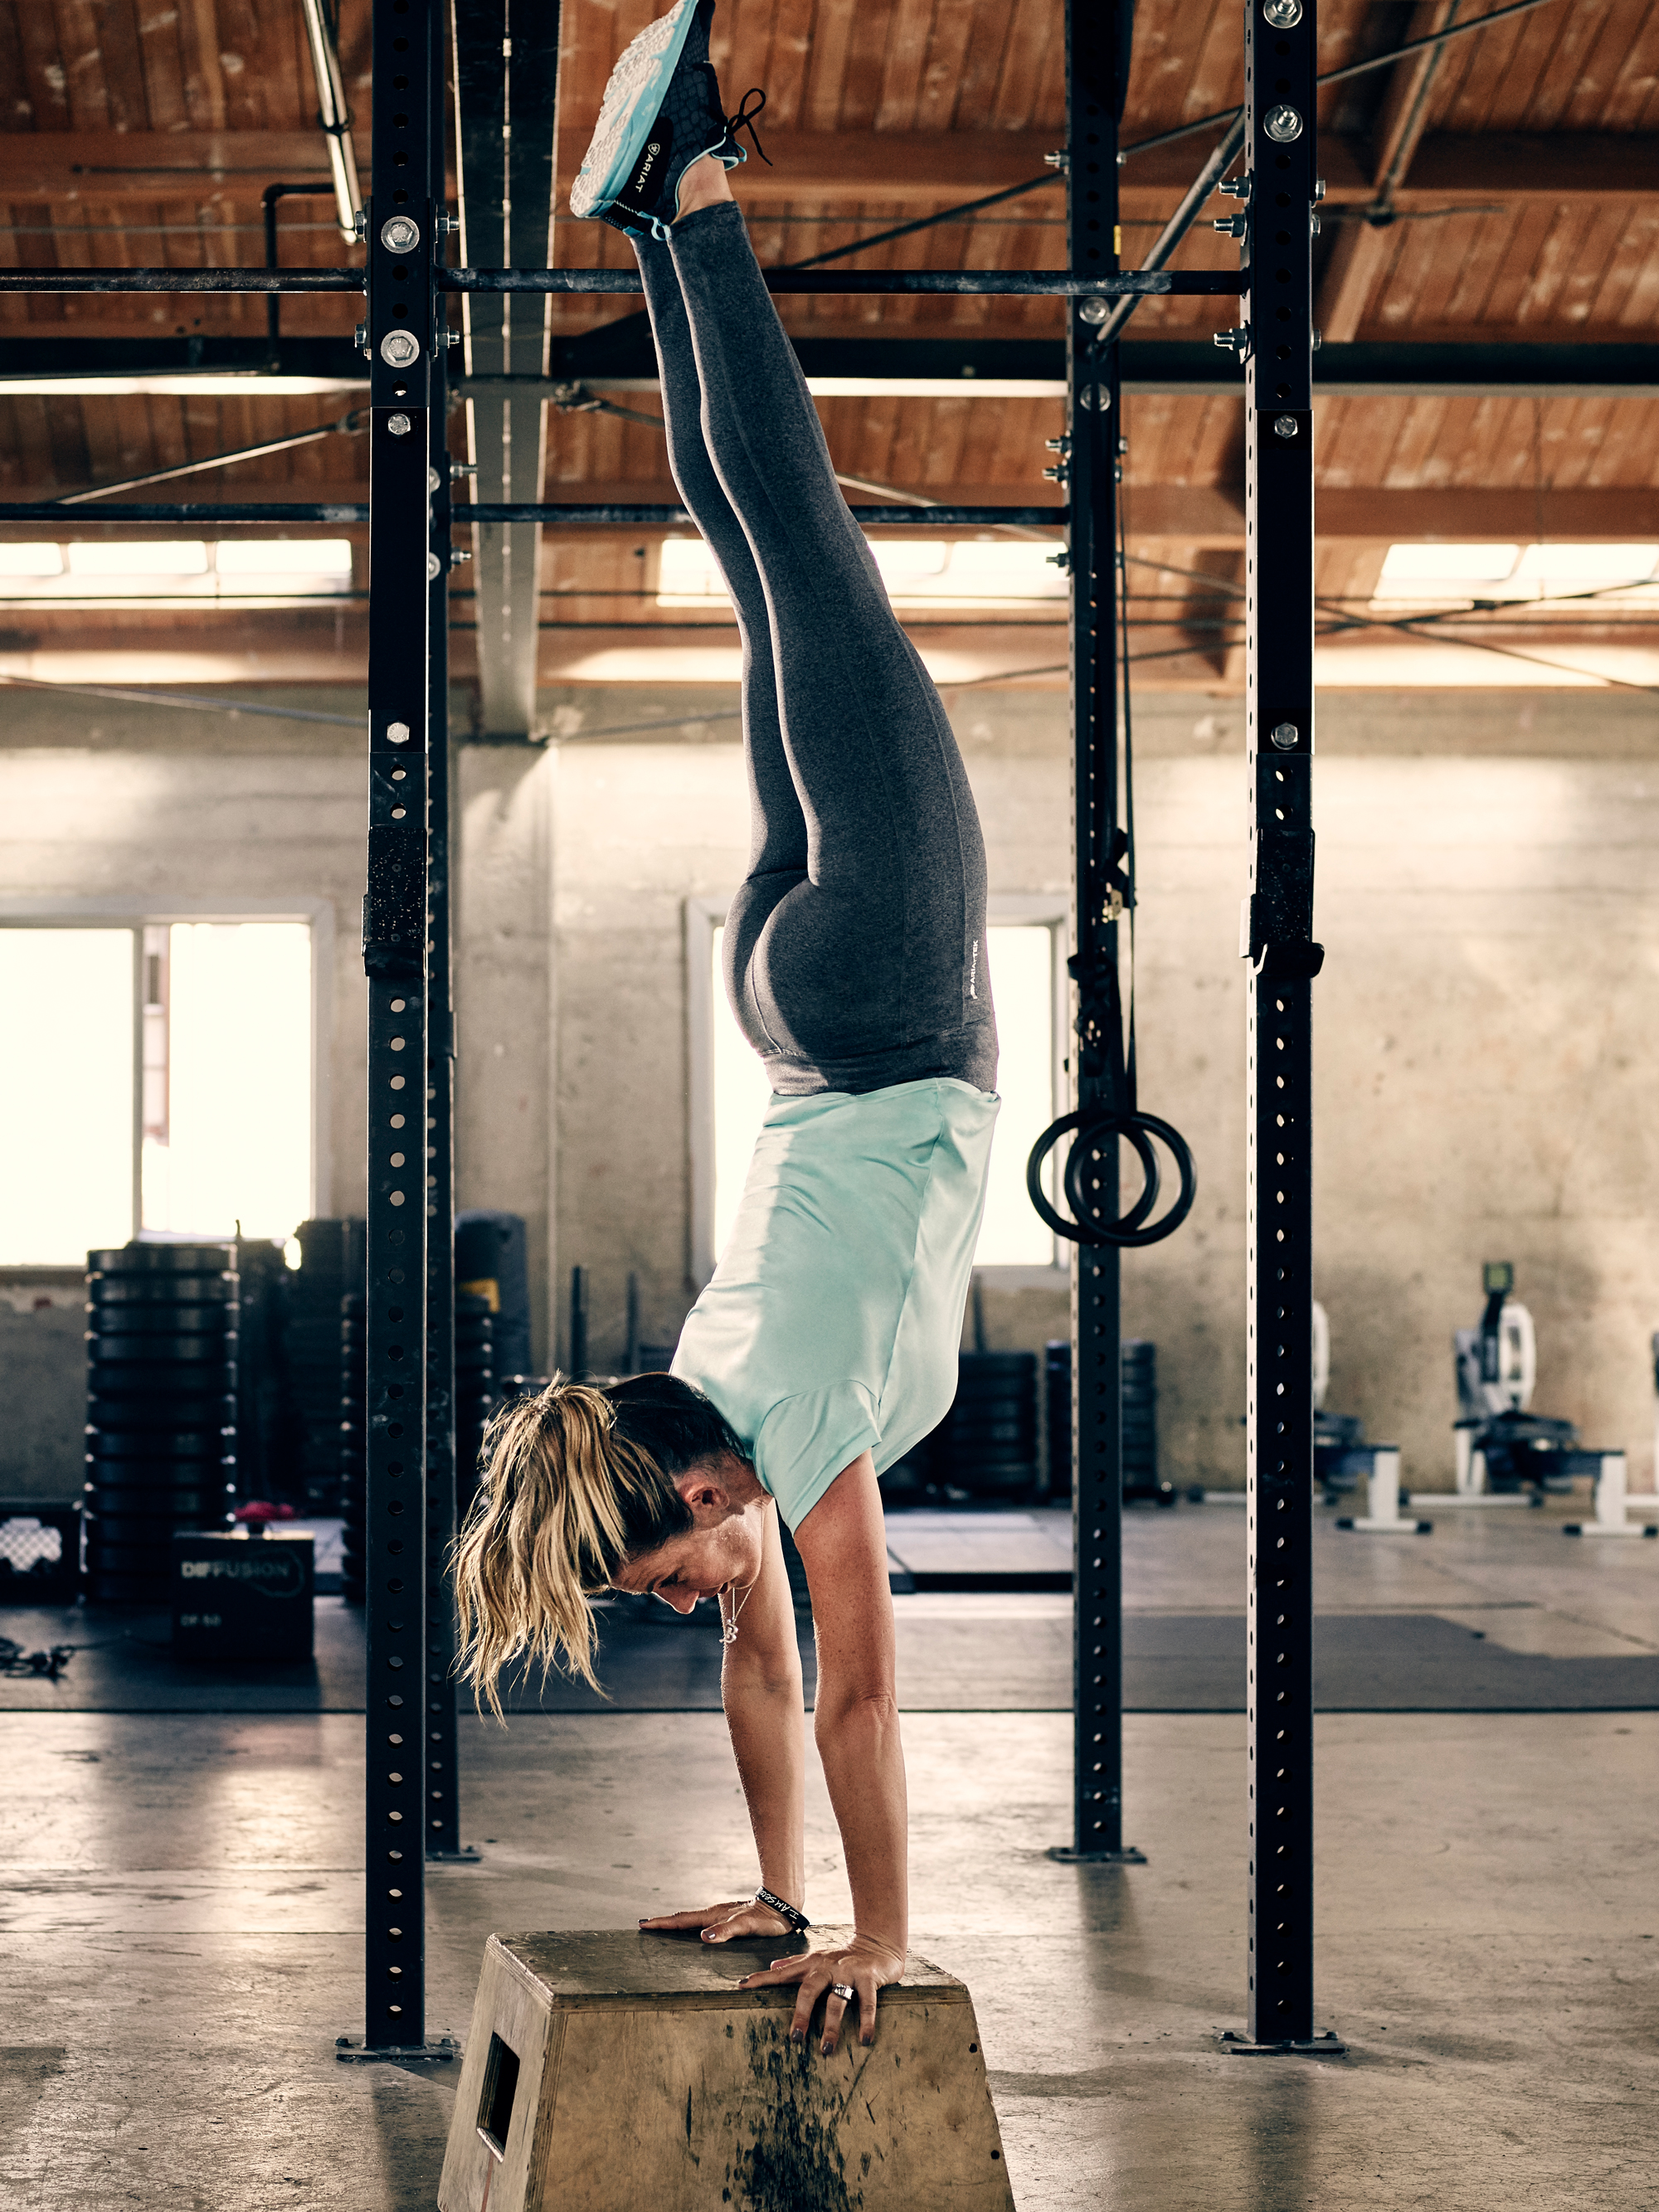 Women in gym working out, doing a handstand in Airat workout gear